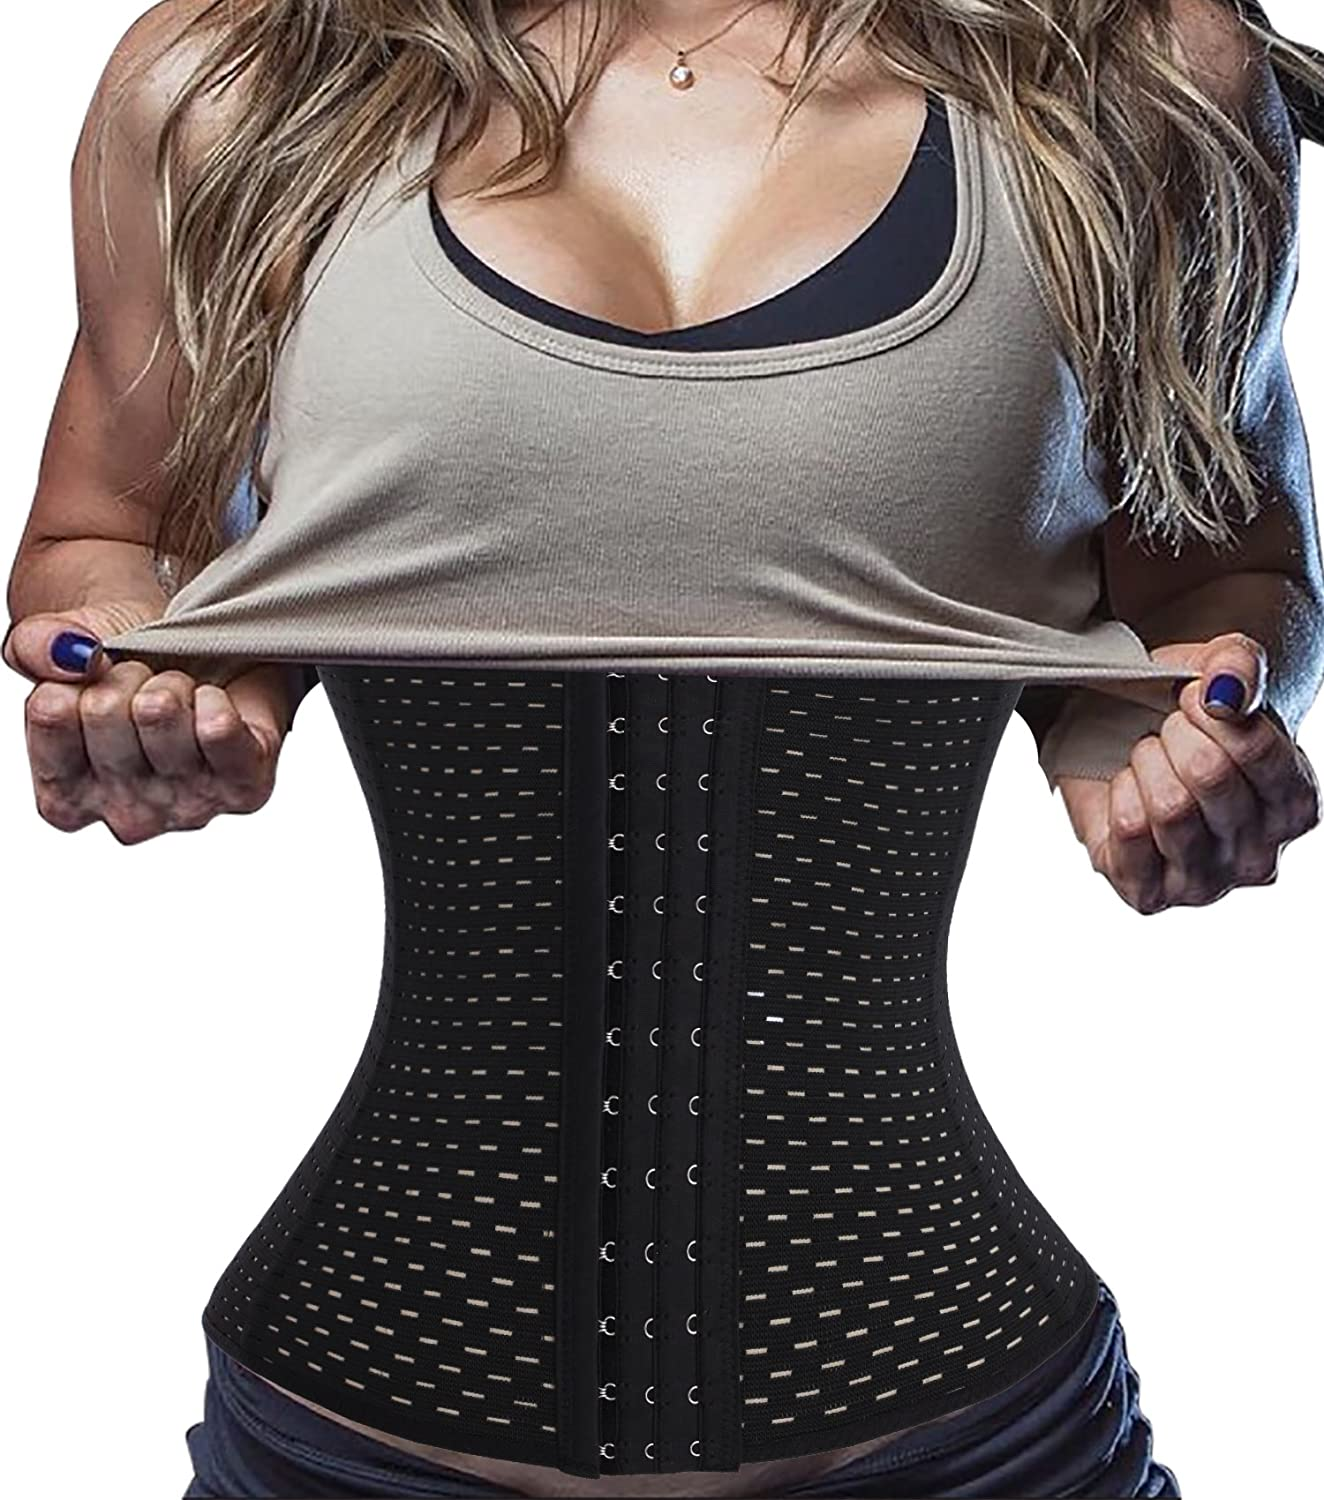 Hourglass Waist Trainer Corset Tummy Cincher Control Workout Sport for Weight Loss Breathable Firm Control